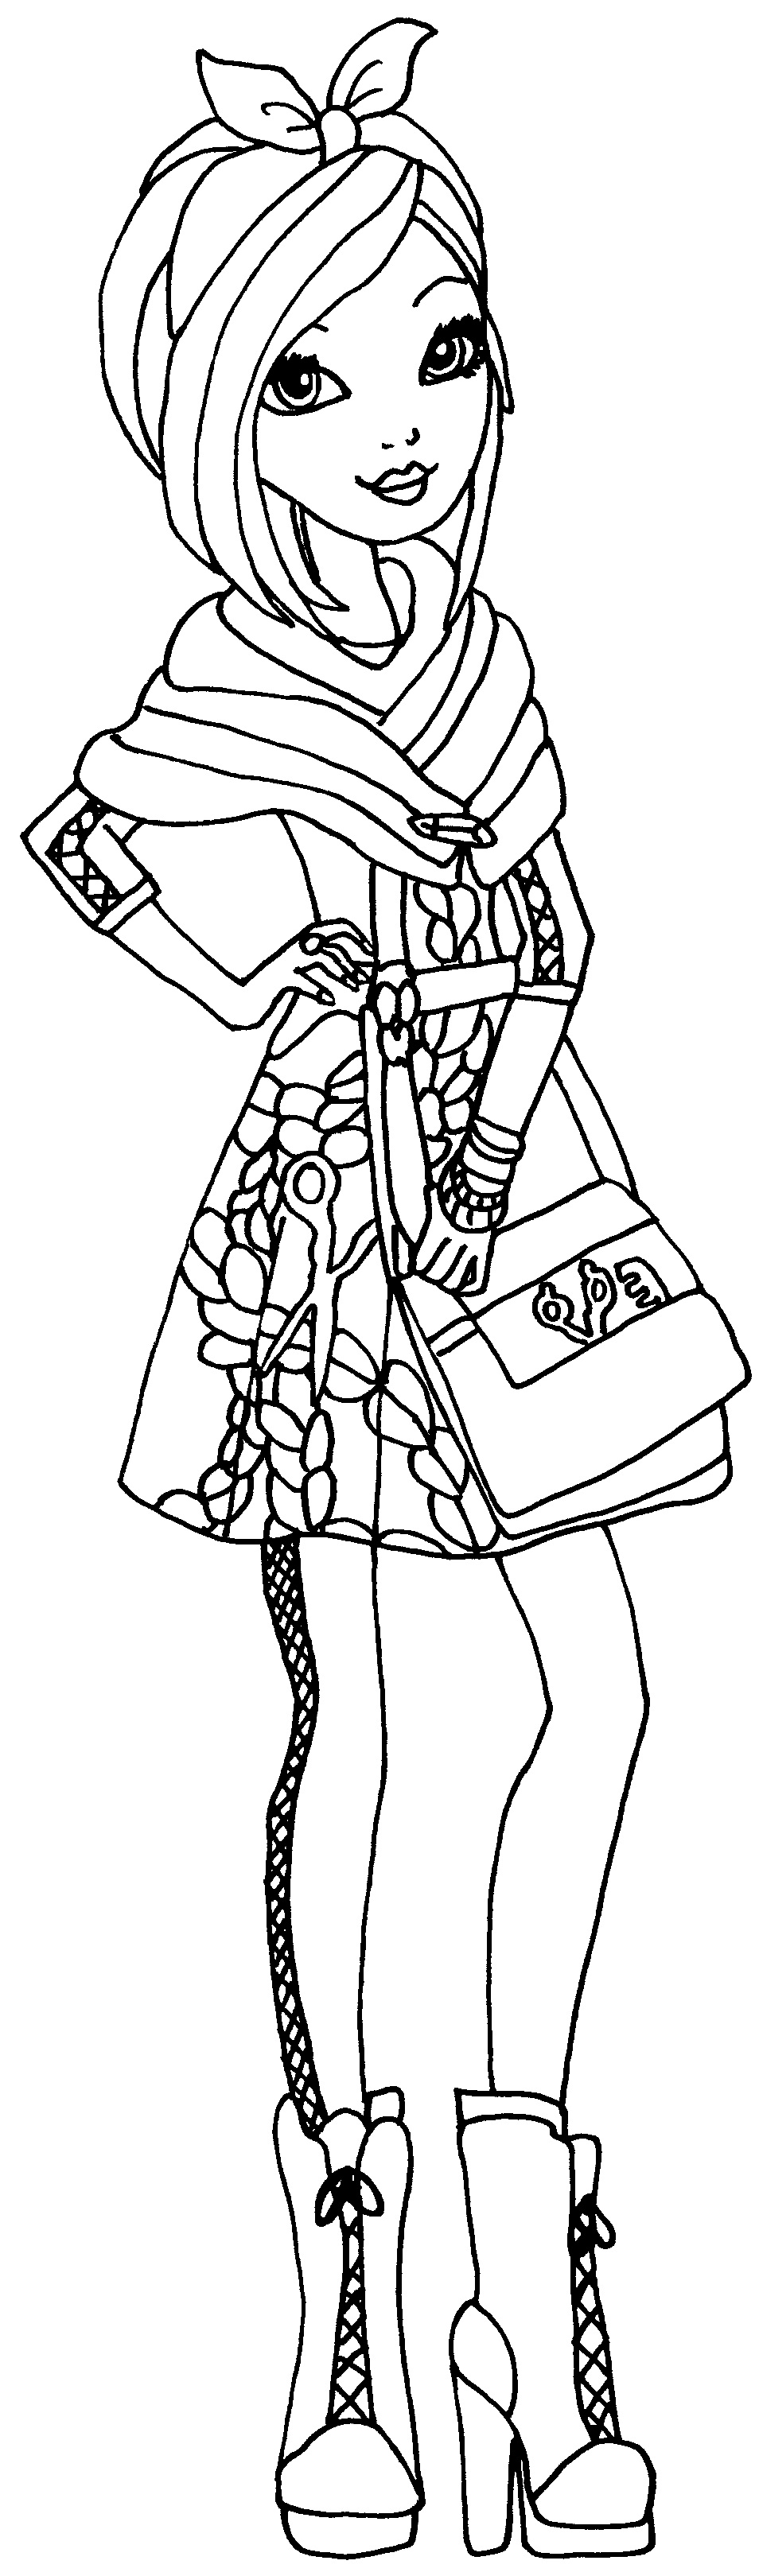 Coloring pages for ever after high - Coloring Pages For Ever After High 36